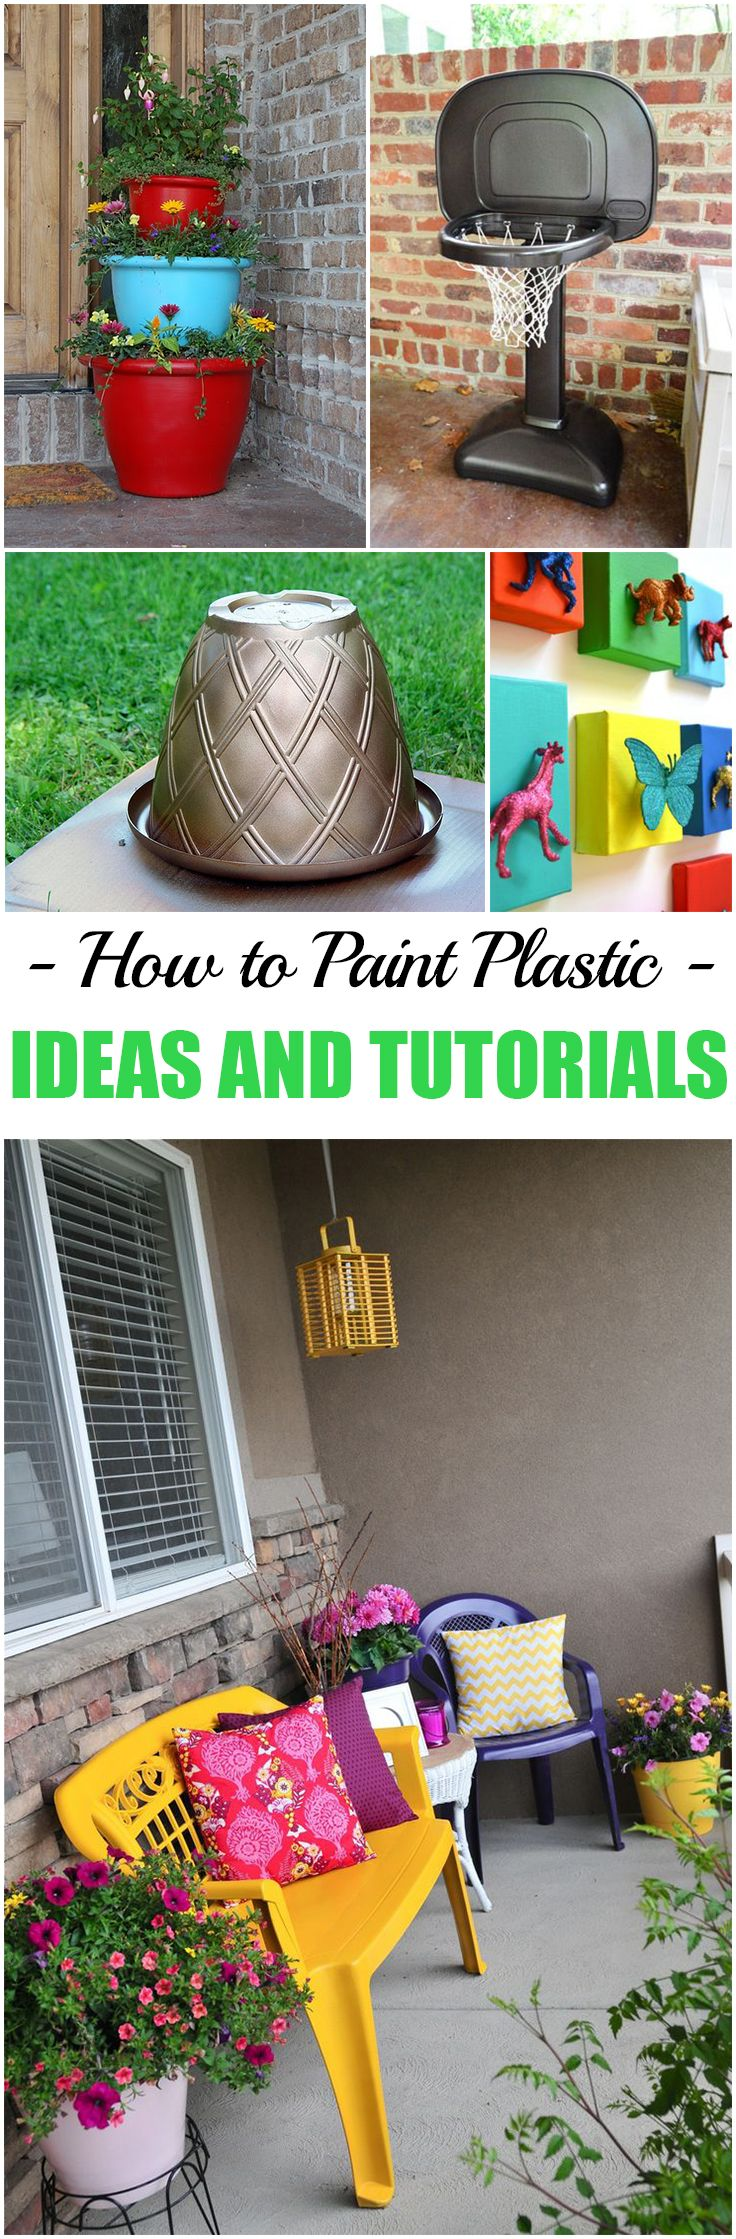 Painting old furniture tips - How To Paint Plastic Fun Ideas And Tutorials For Painting Old Furniture Plastic Toys